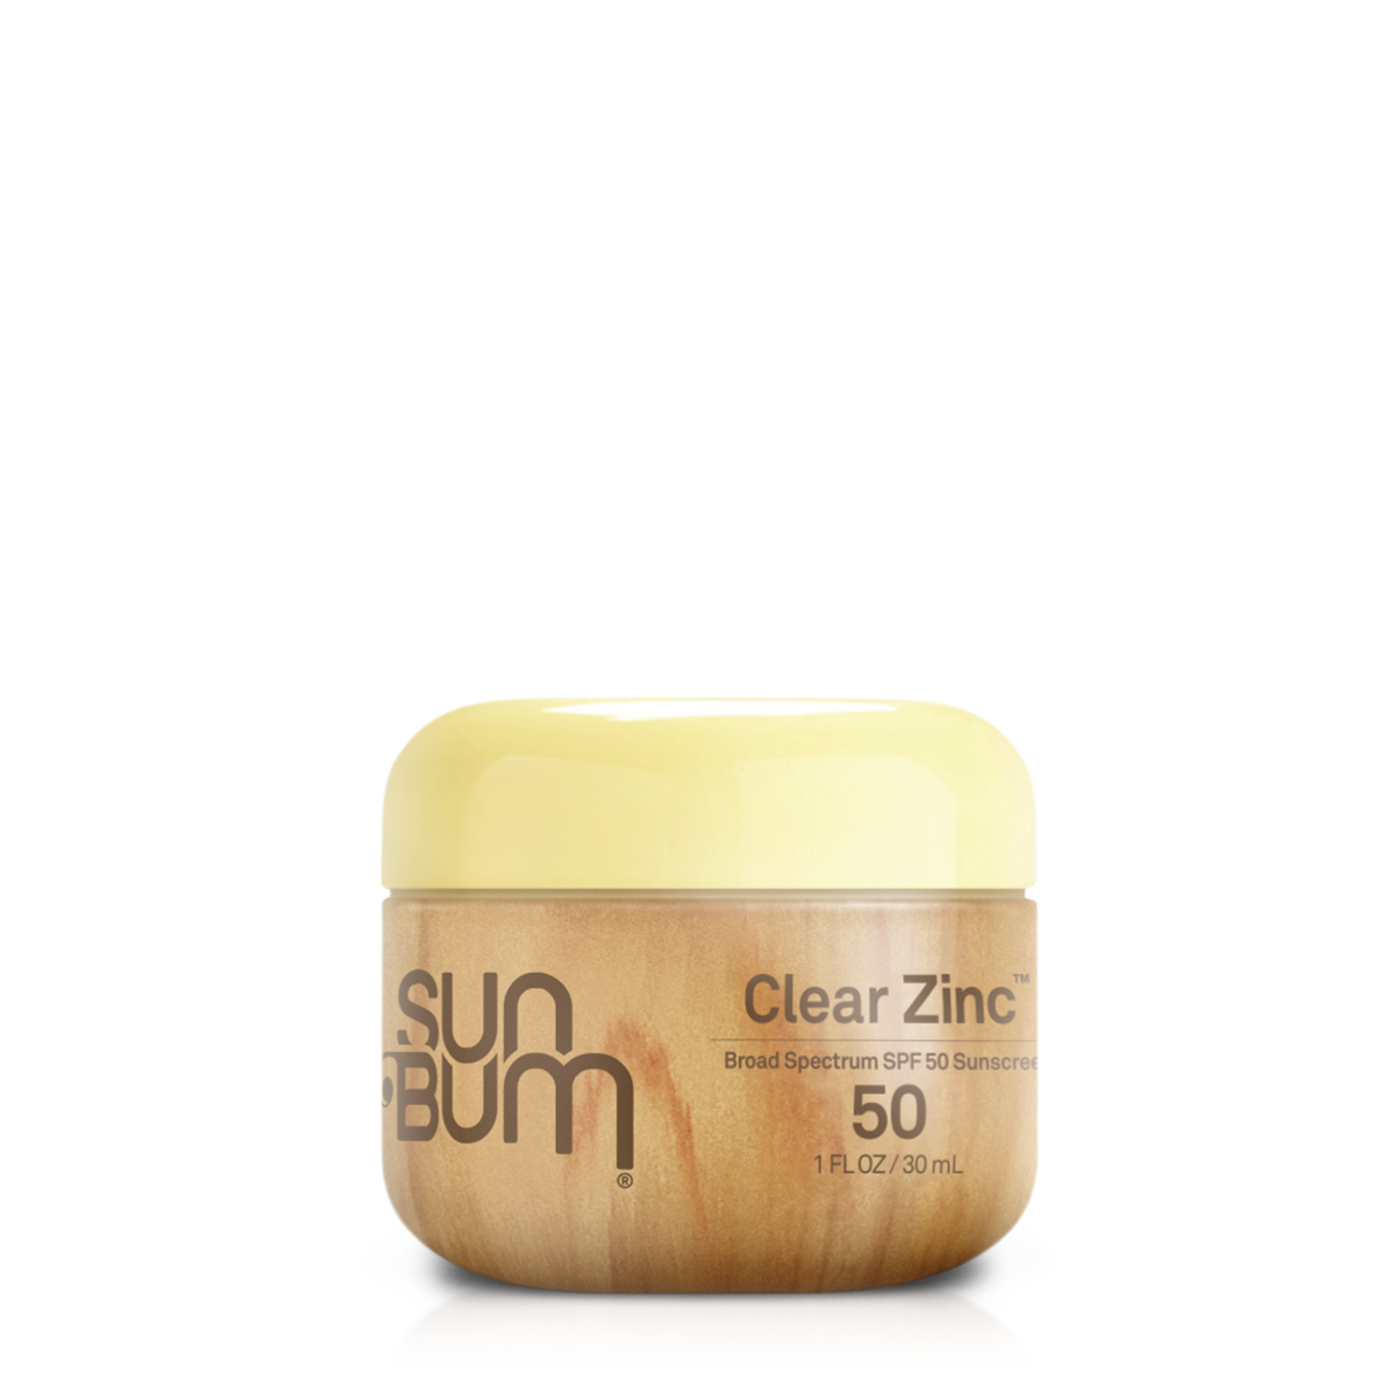 Sun Bum Original SPF50 Clear Zinc